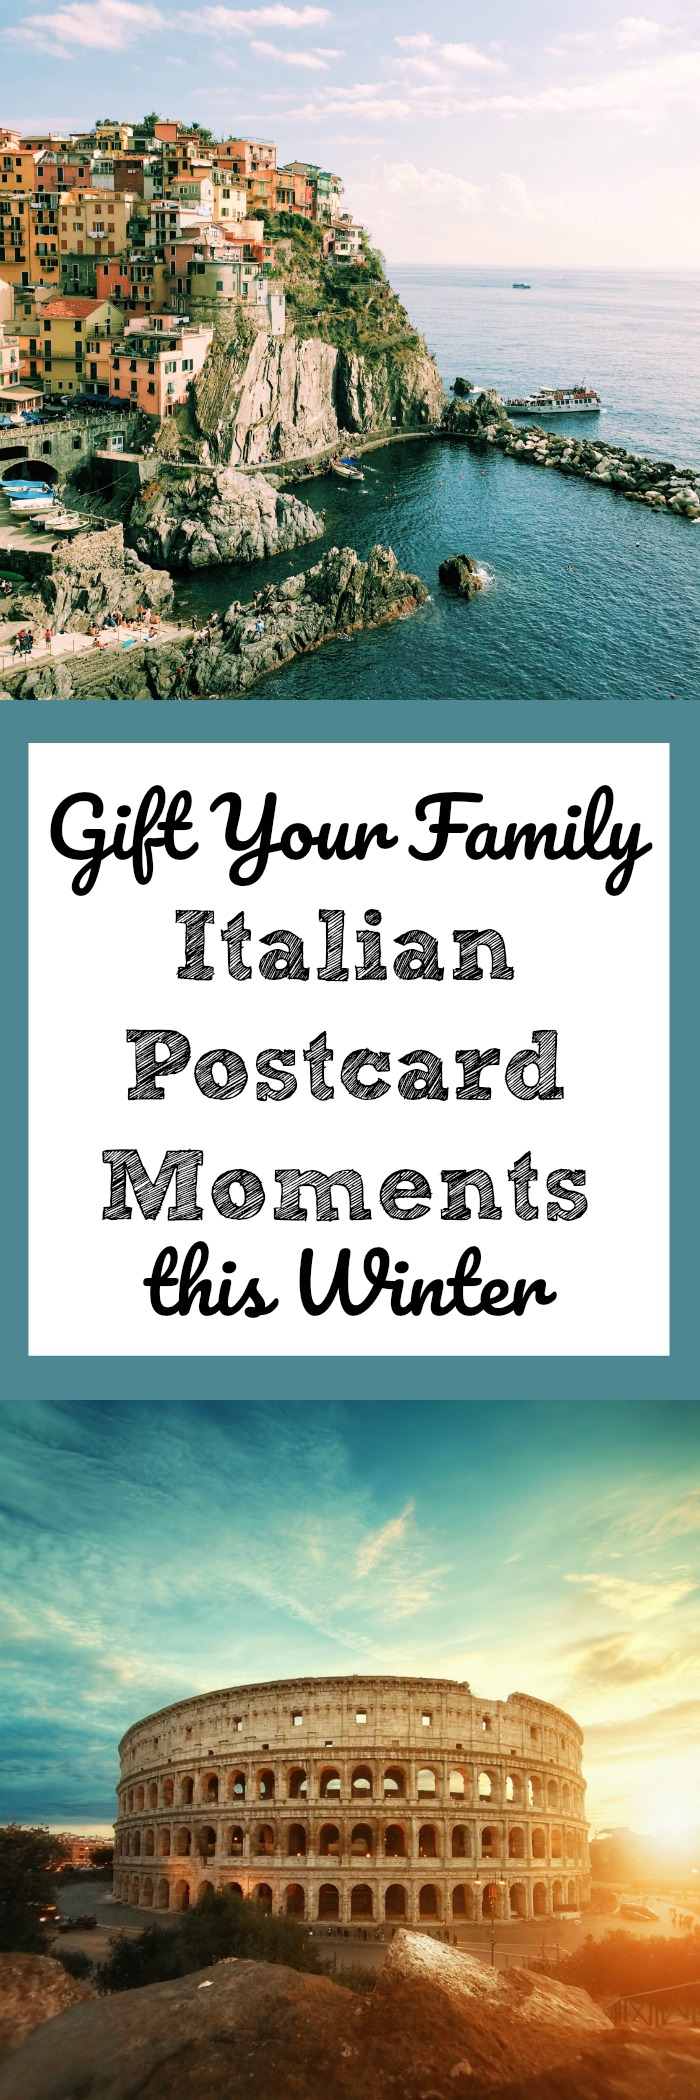 Gift Your Family Italian Postcard Moments this Winter